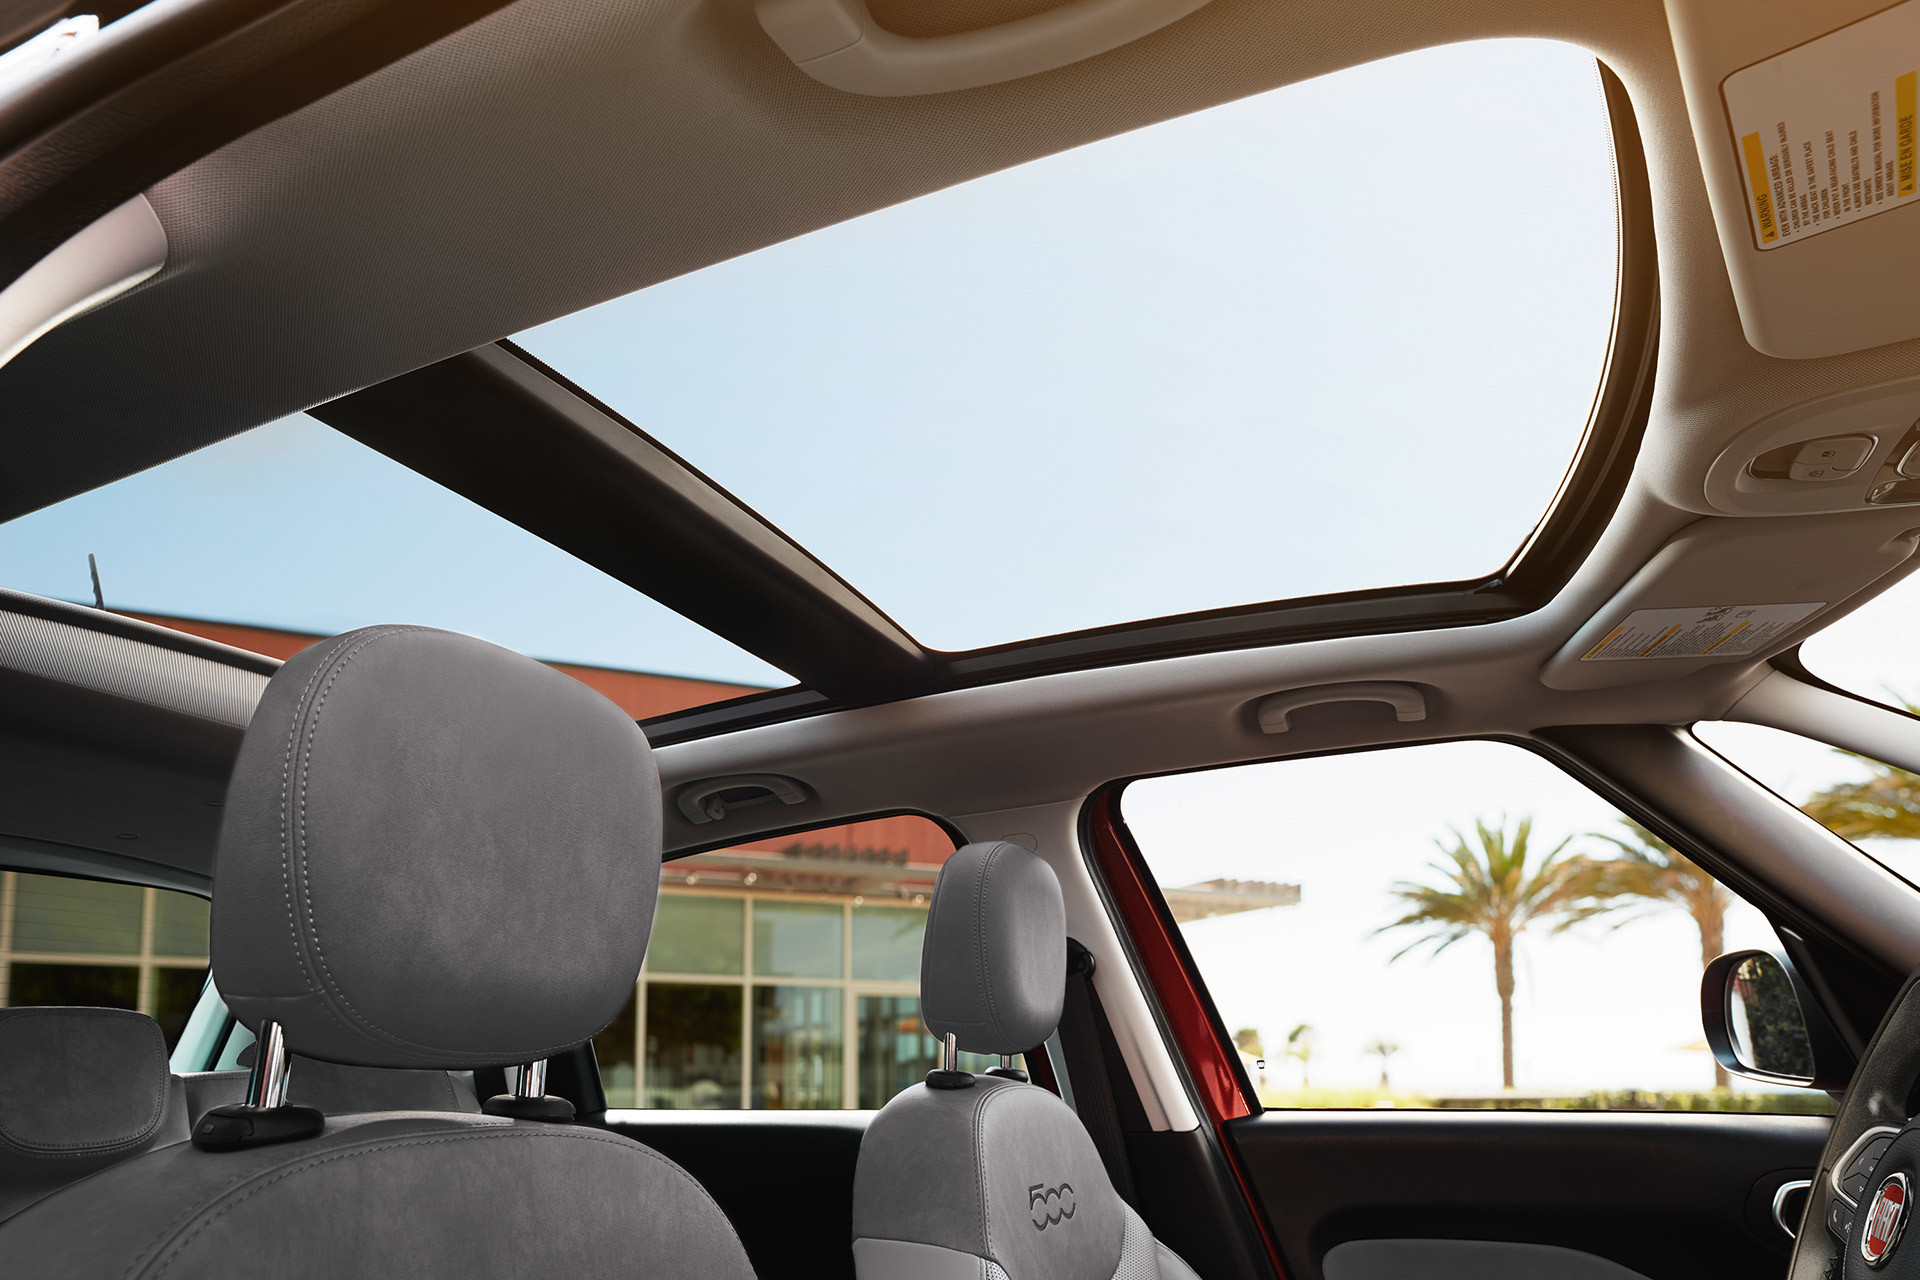 2019 Fiat 500L interior view of dual pane sunroof